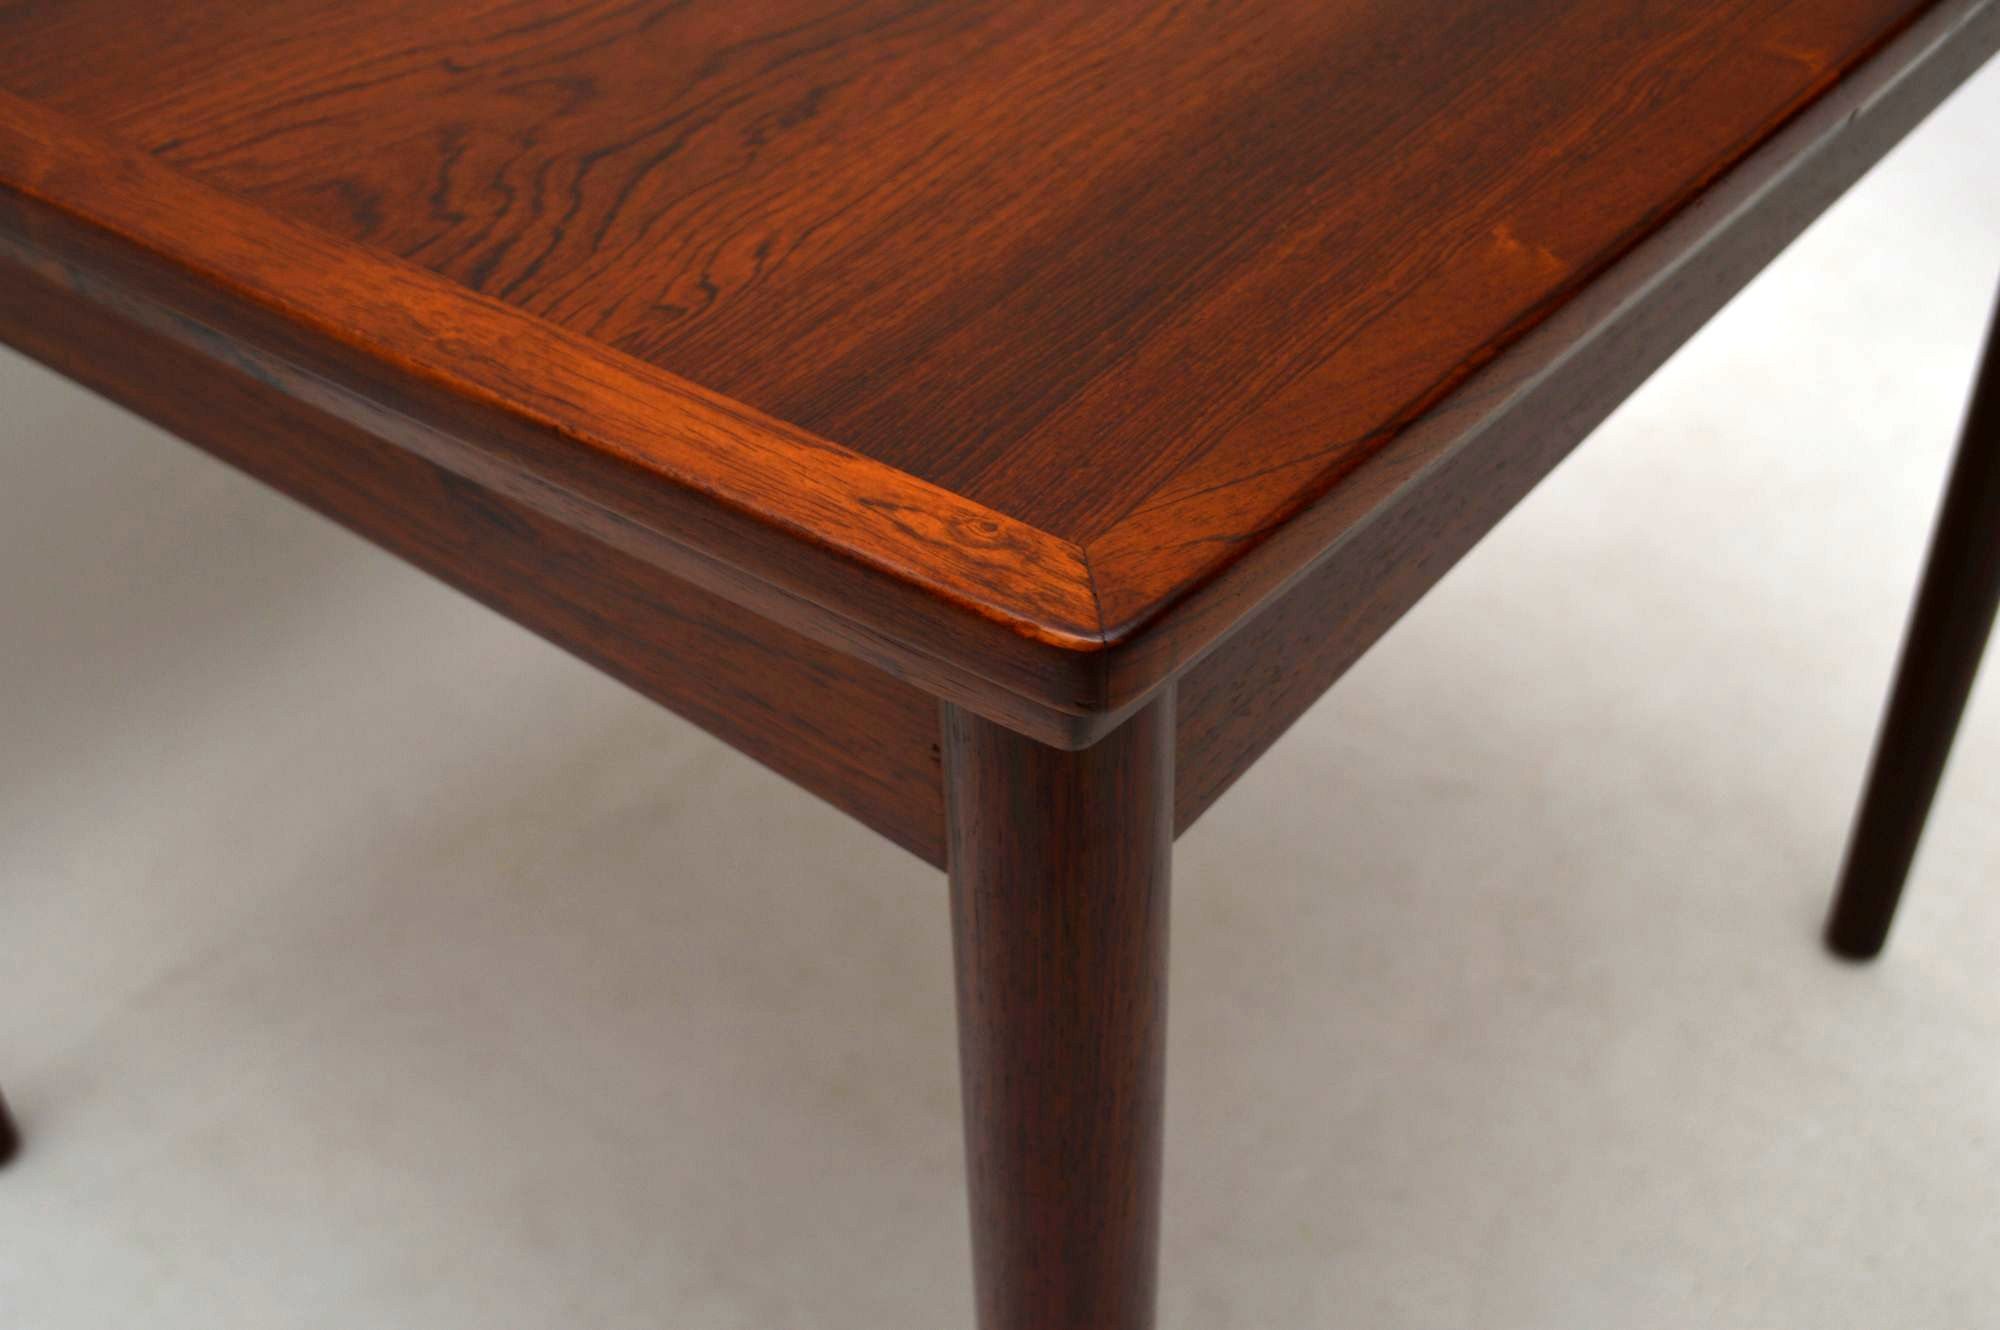 1960 s Danish Rosewood Retro Dining Table by Poul Hundevad Vintage